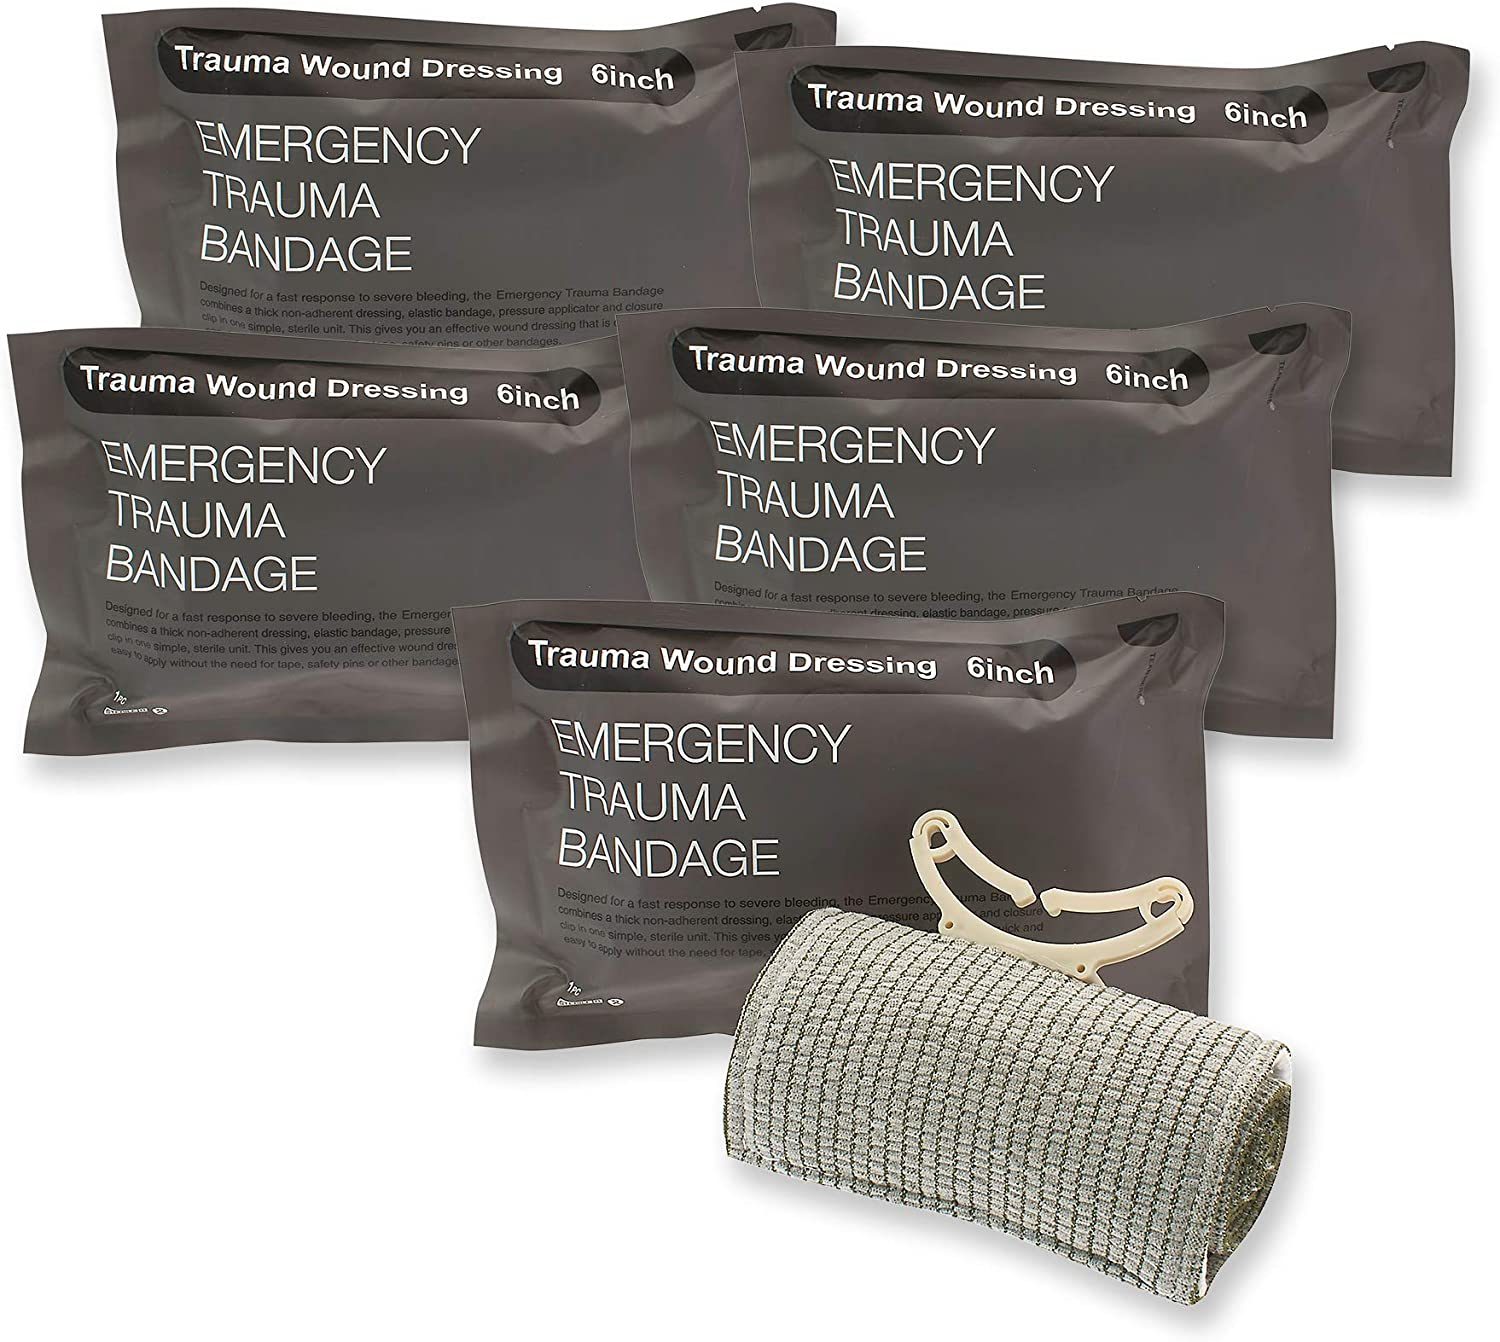 "5 Pieces Trauma Bandage 6"" Emergency Military Style Battle Wound Dressing First Aid IFAK Stop The Bleed Israeli Bandage Wrap"